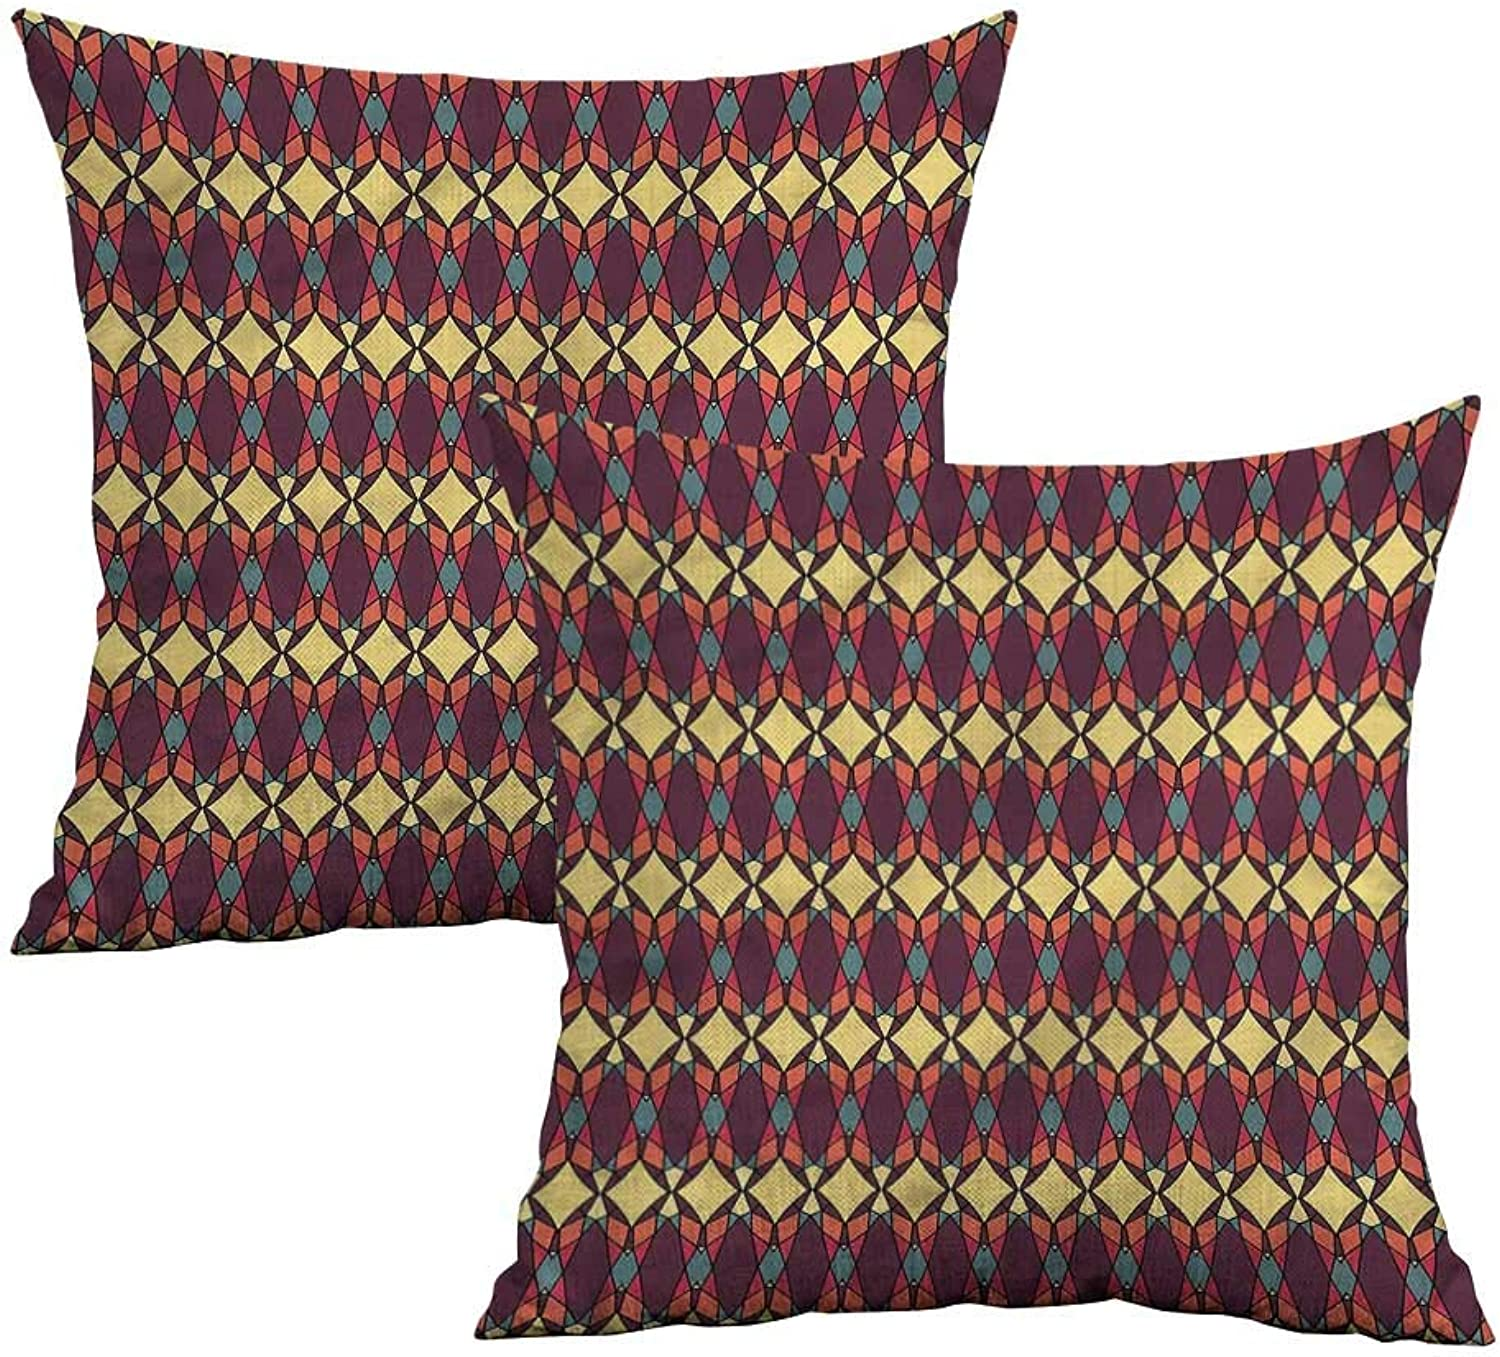 Khaki home African Square Pillowcase Covers with Zipper Abstract Ethnic Figures Square Kids Pillowcase Cushion Cases Pillowcases for Sofa Bedroom Car W 20  x L 20  2 pcs